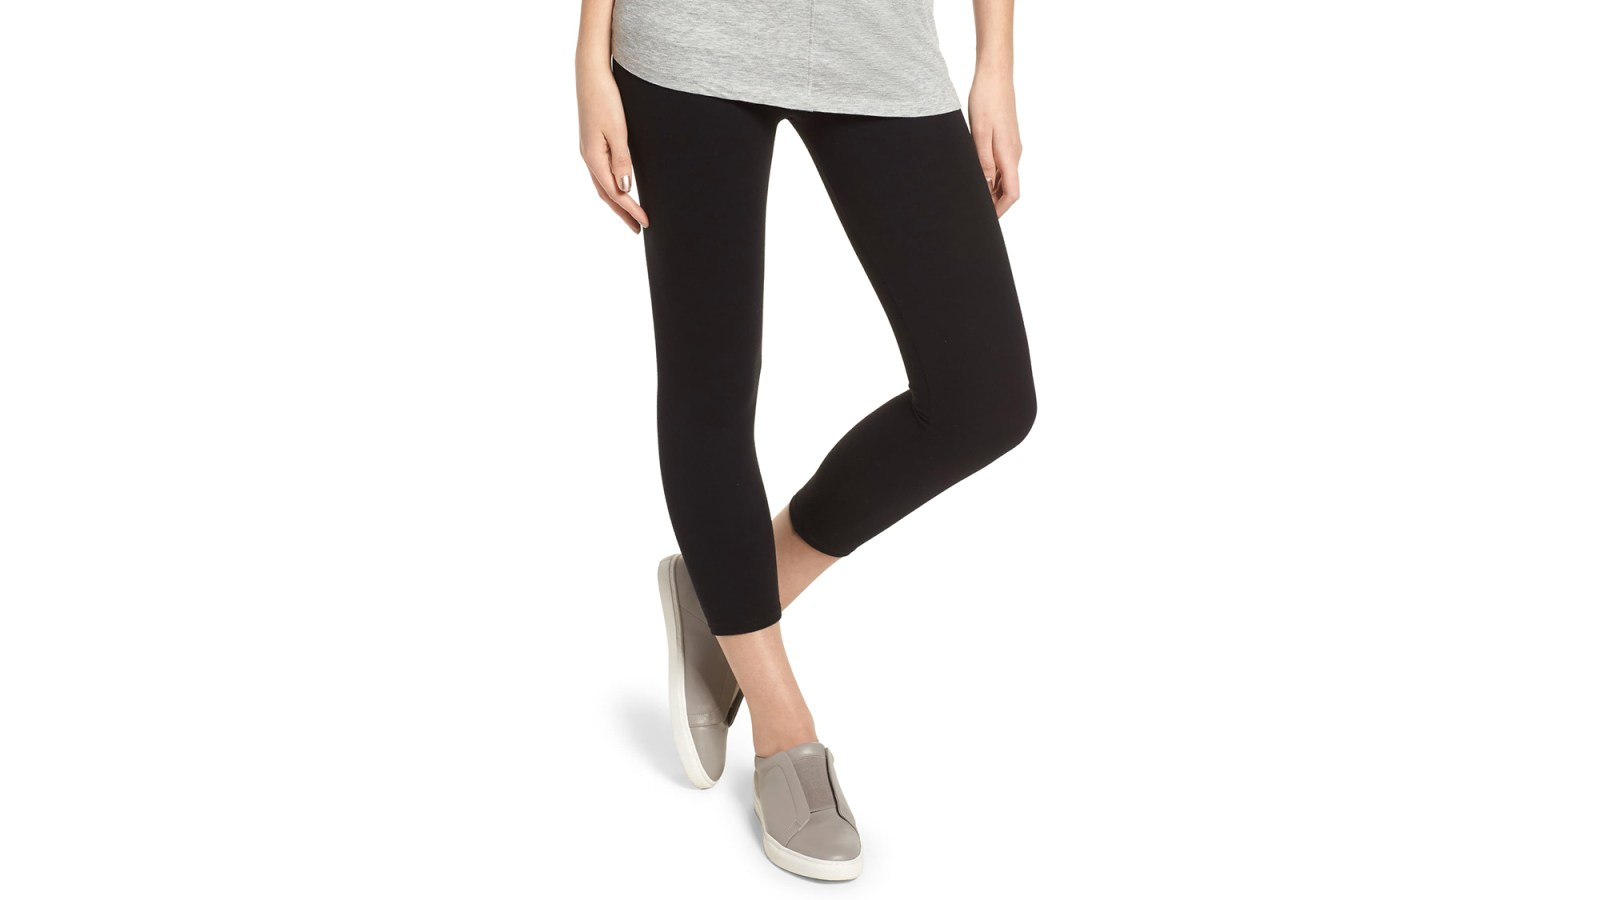 2a4ea90f39 These Nordstrom Leggings Are a Wardrobe Staple You'll Wear Every Day